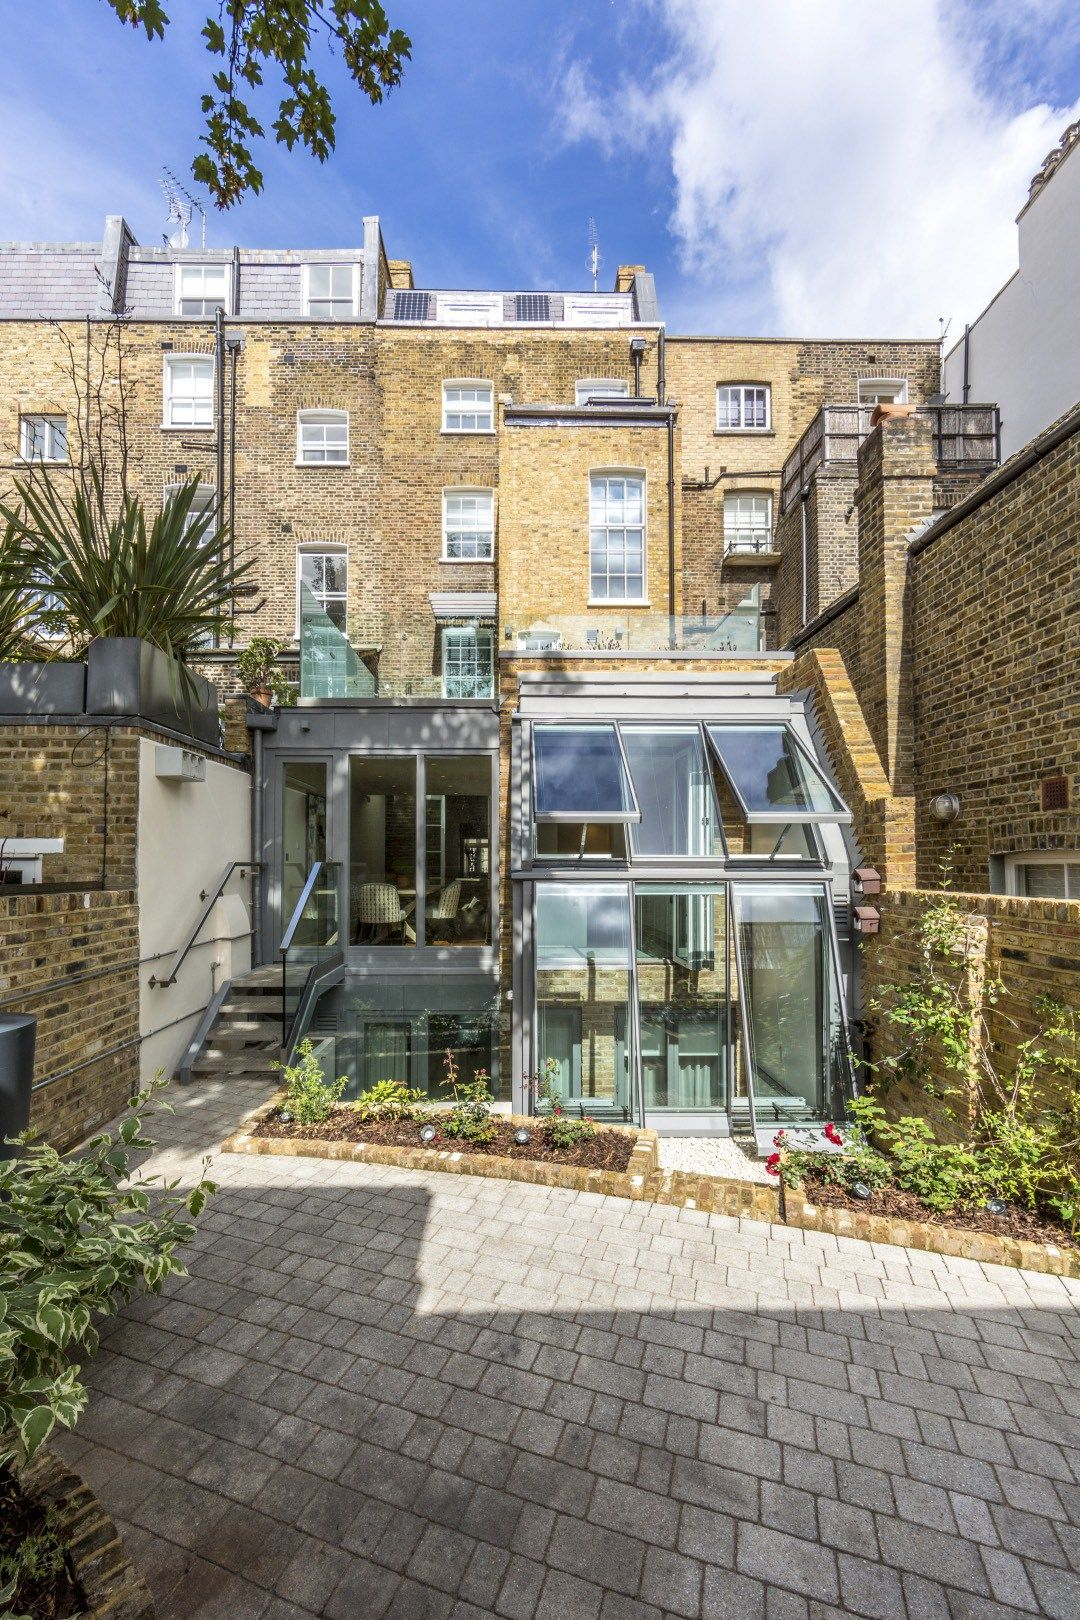 119 Ebury Street; the UK's most sustainable Period rental